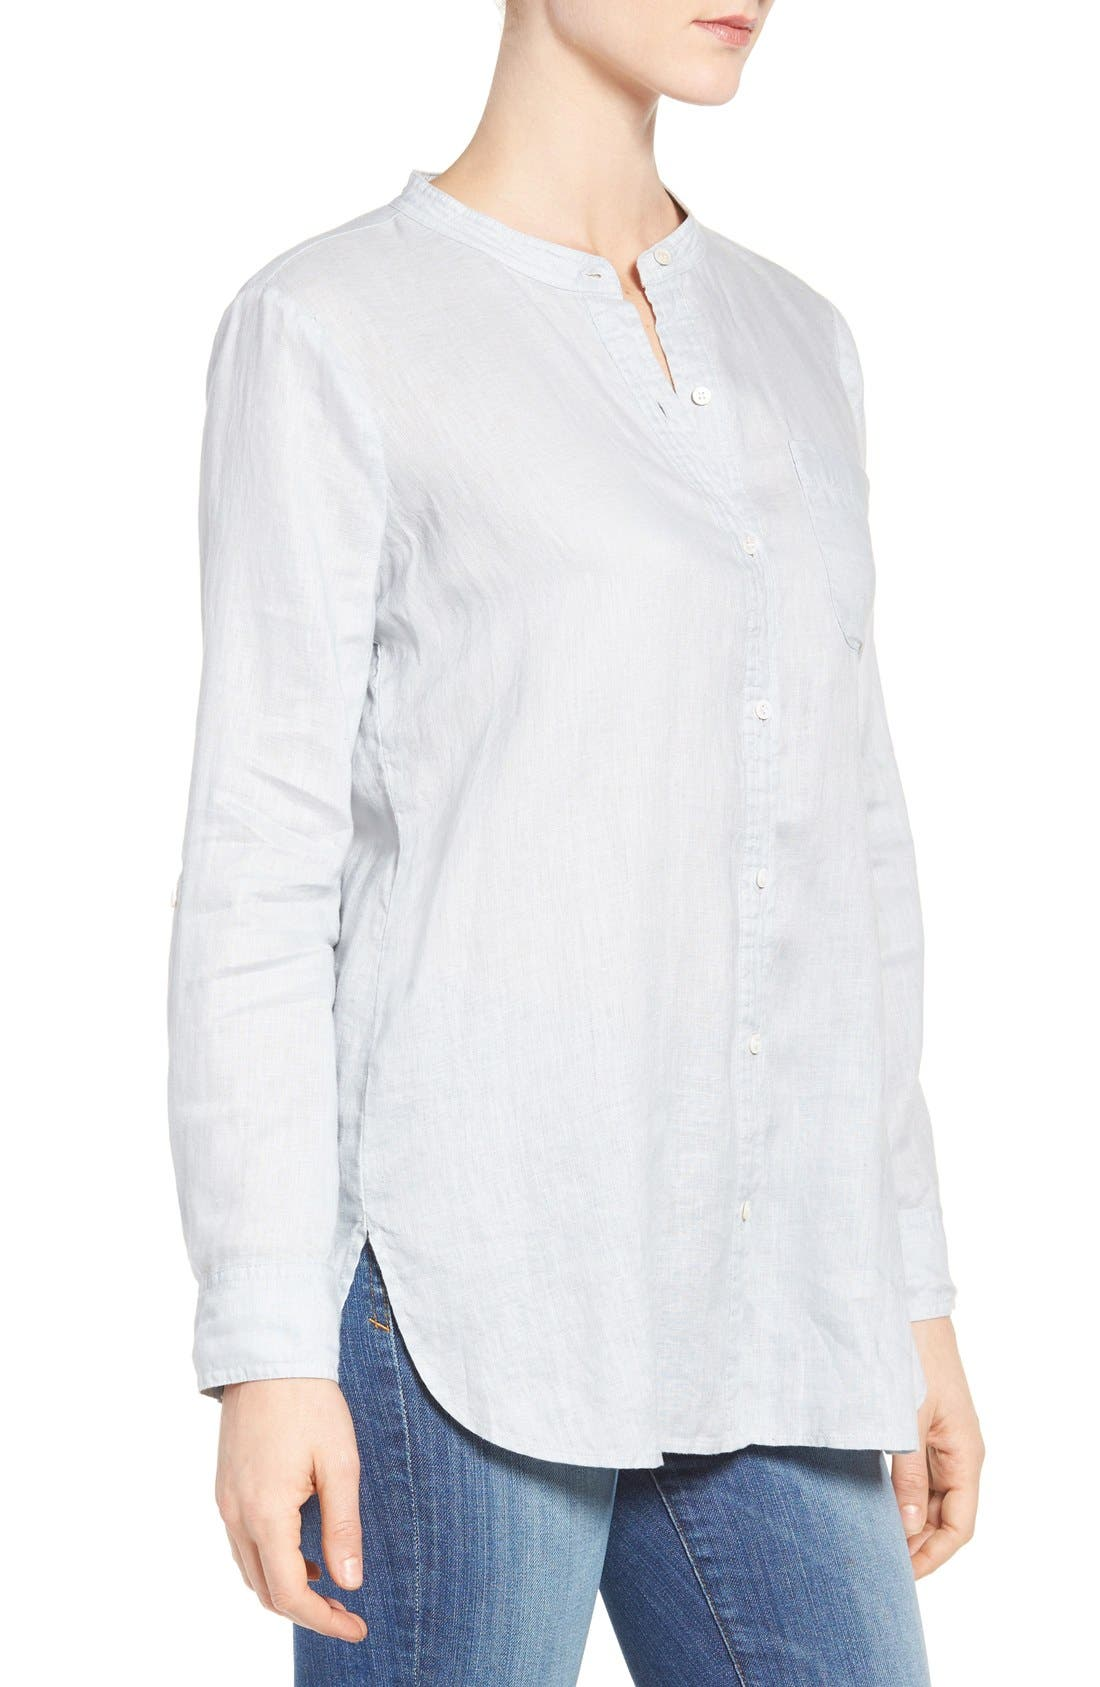 Two by Vince Camuto Collarless Linen Shirt,                             Alternate thumbnail 2, color,                             026